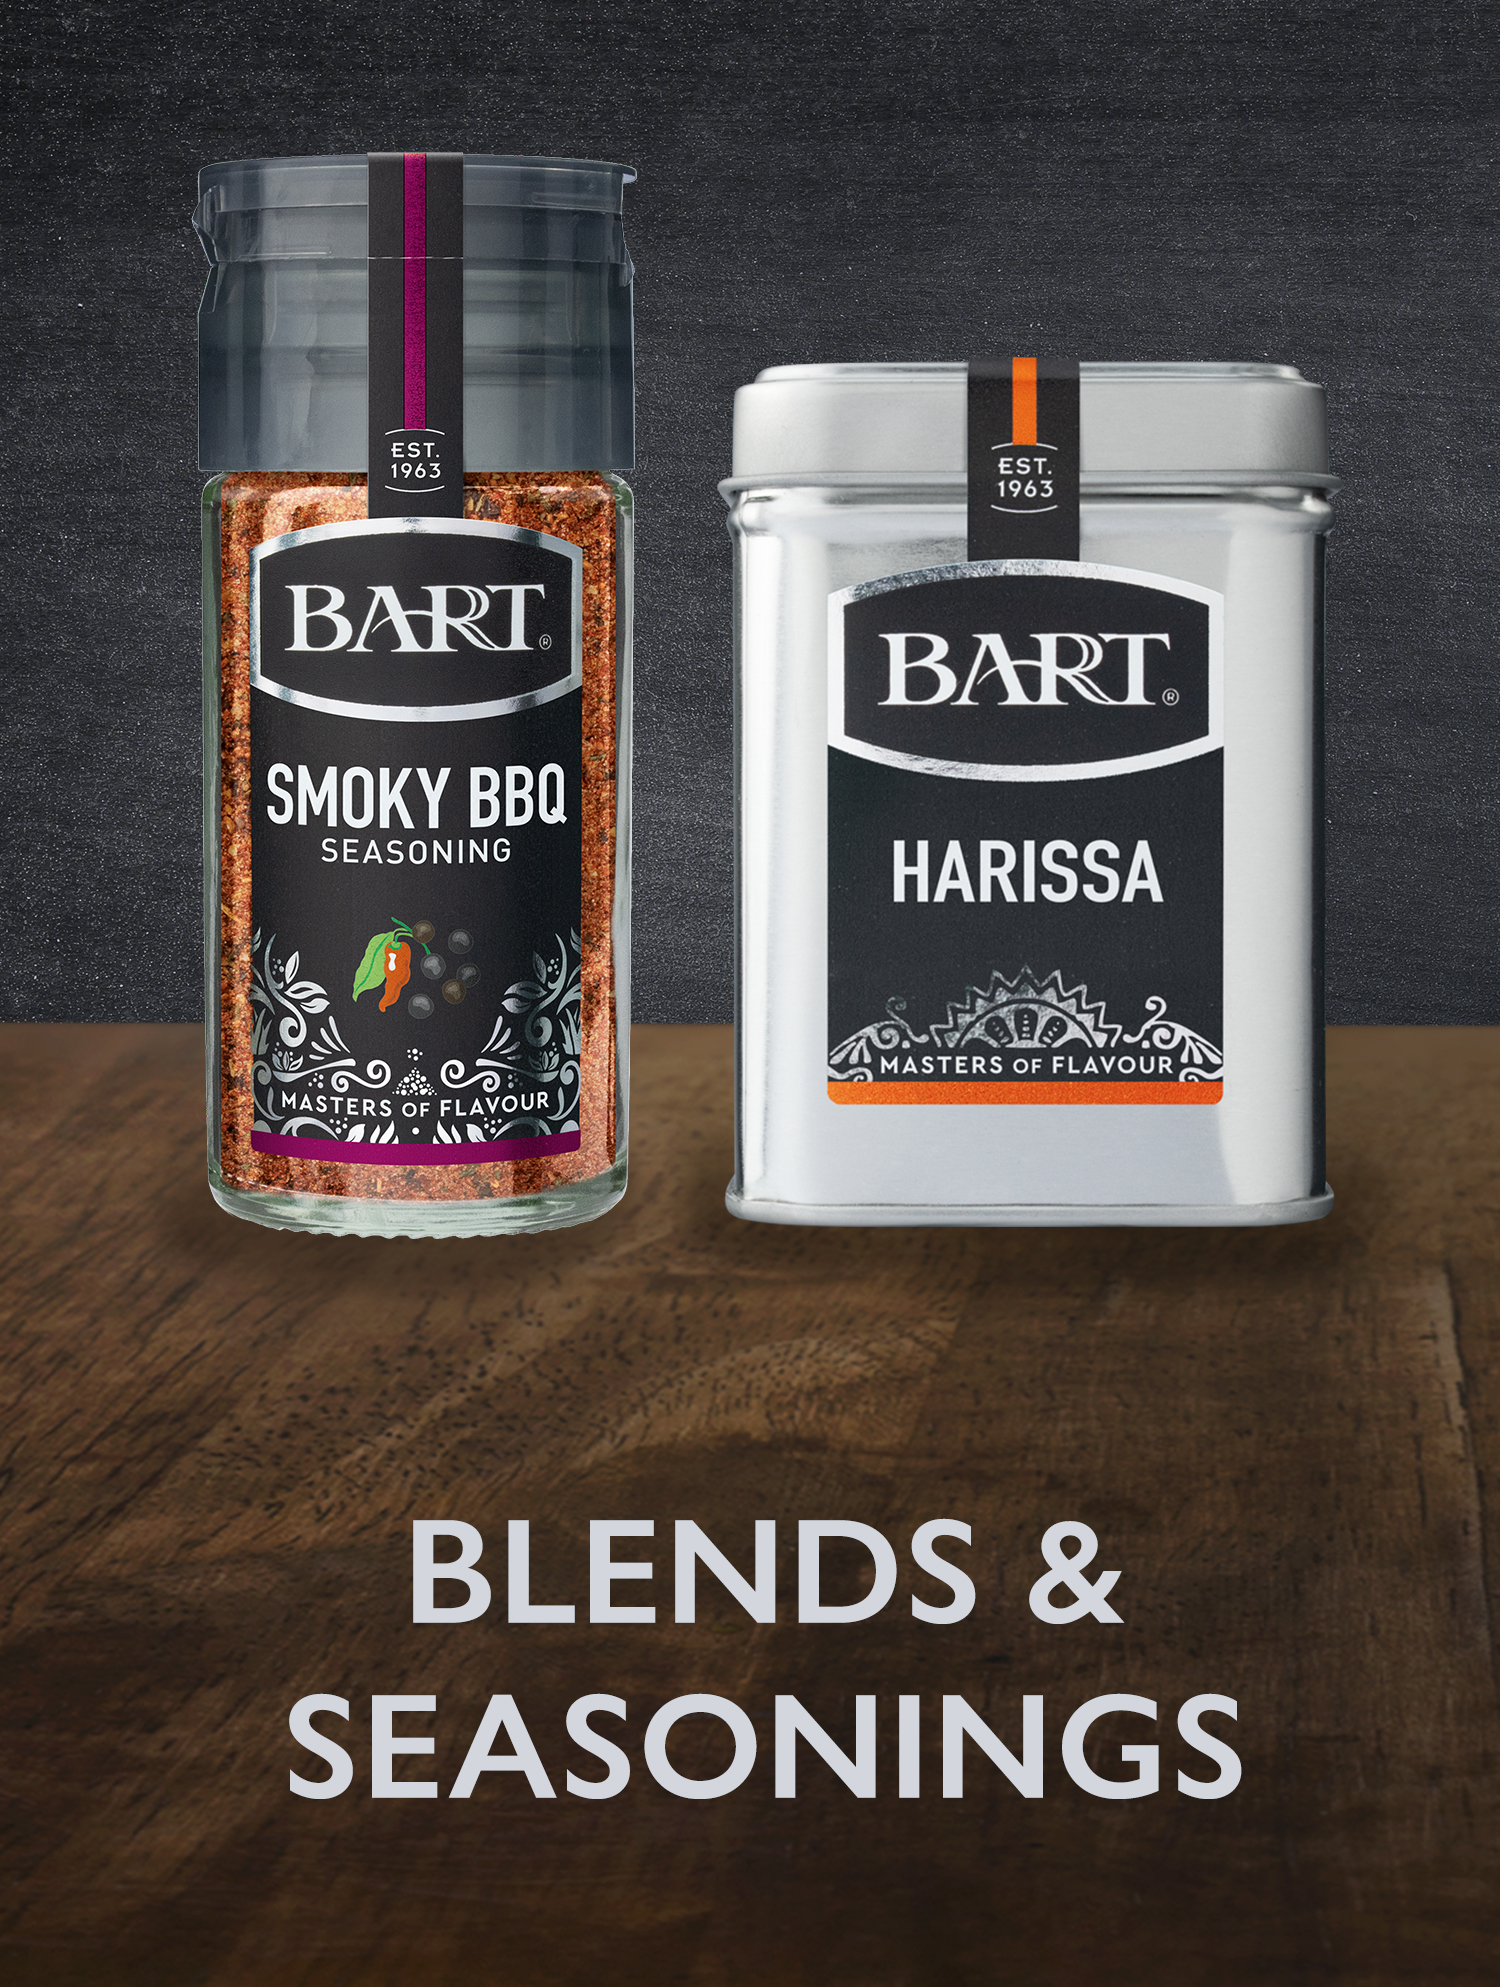 Bart Blends & Seasonings